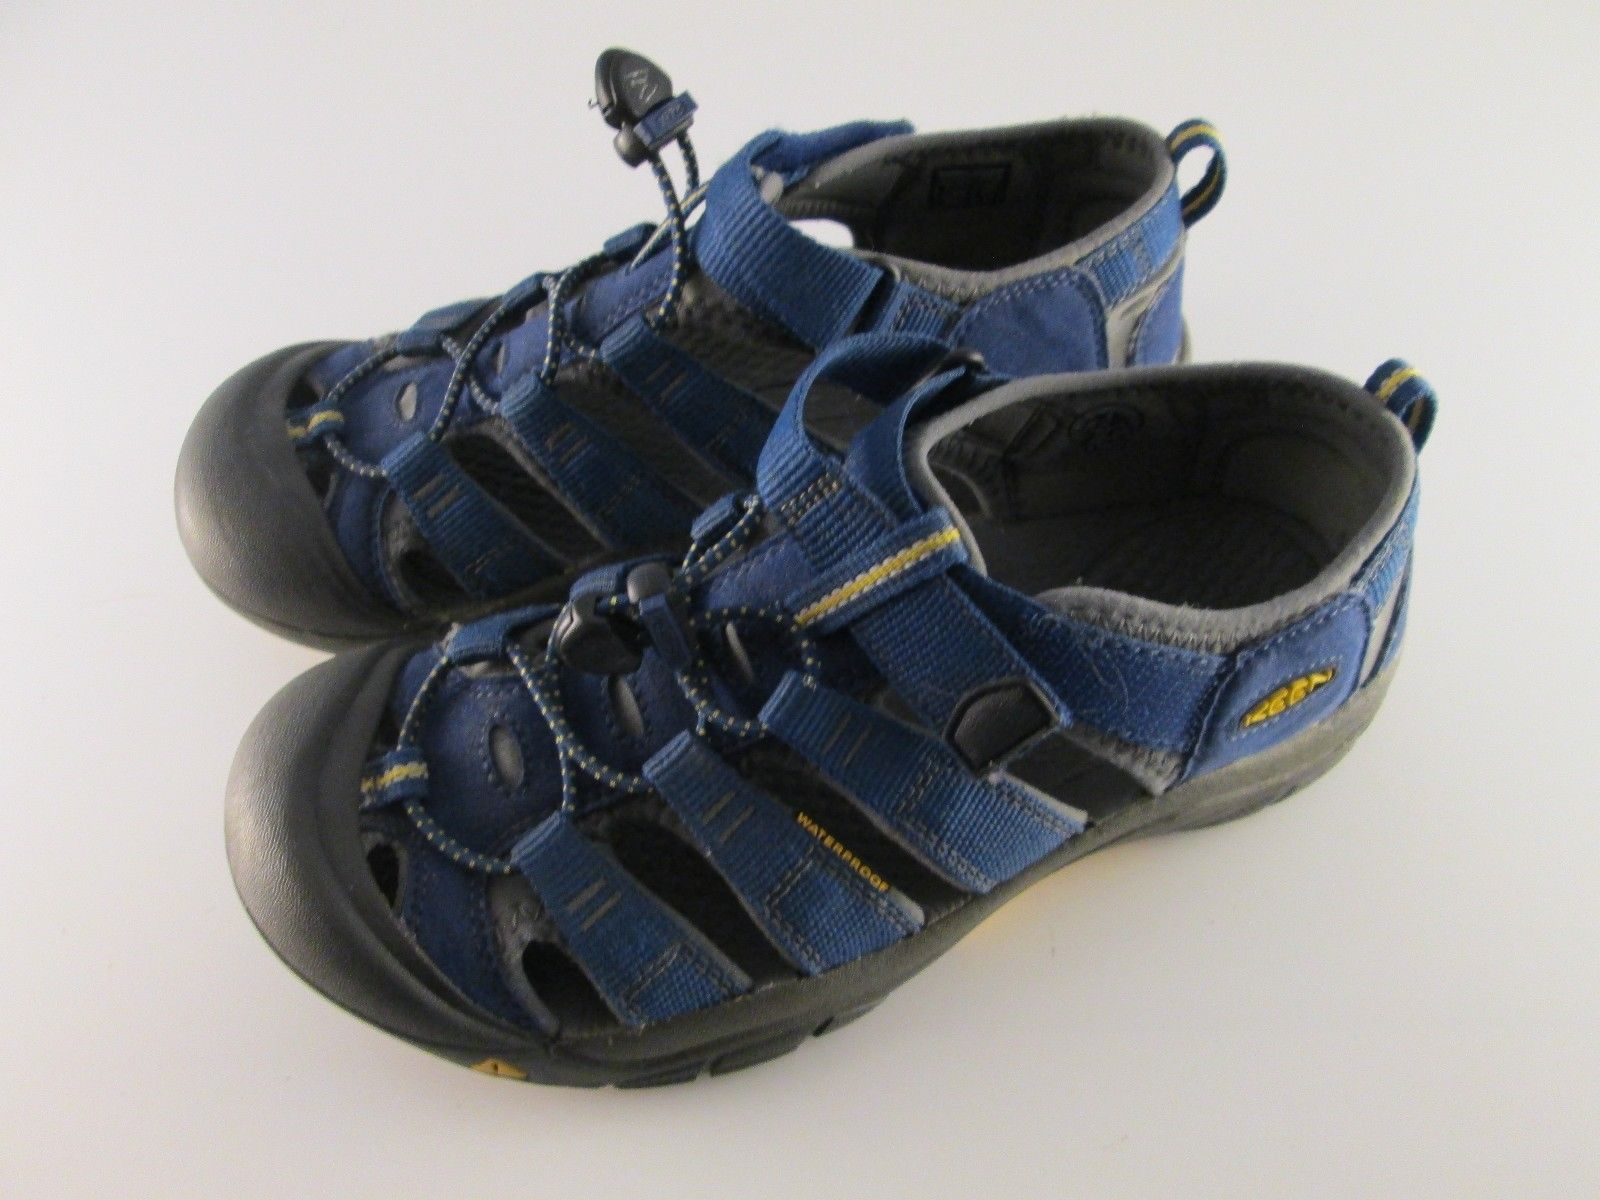 a95a1c20d75b58 Womens KEEN Newport H2 Waterproof Sandals and 29 similar items. S l1600